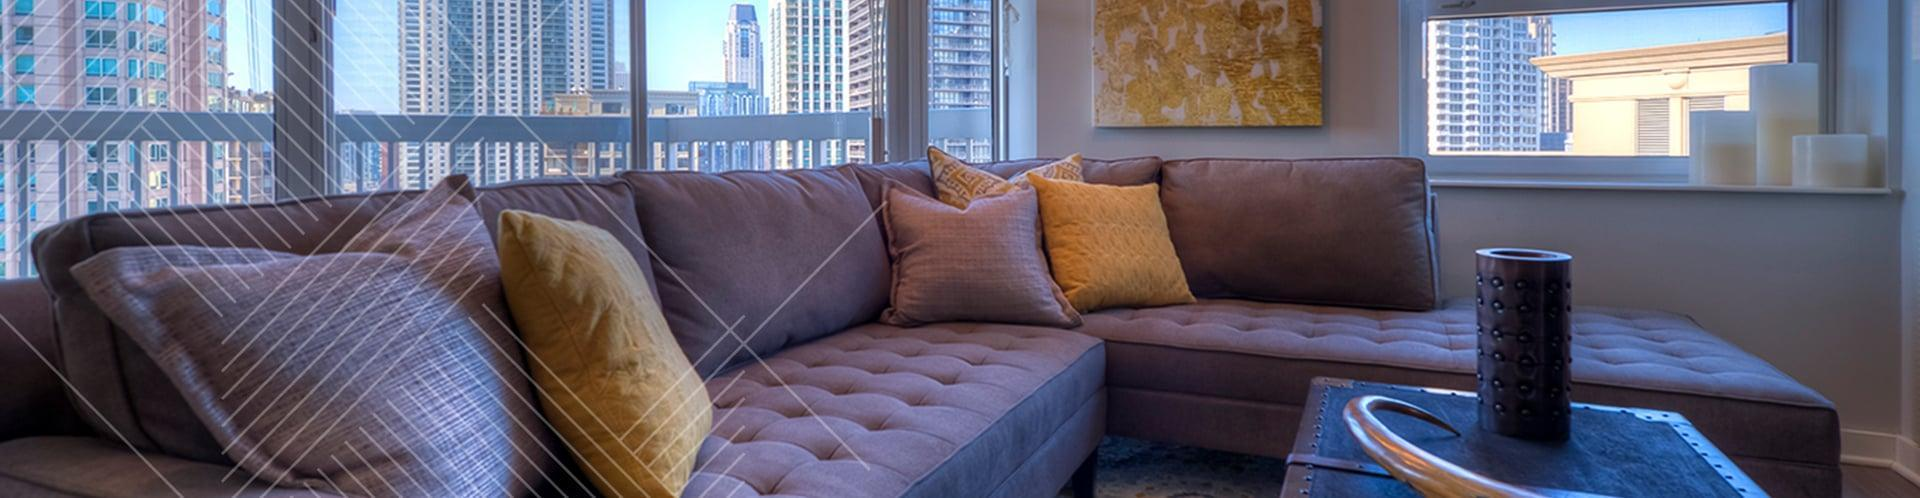 540 N State St #004509, Chicago, IL - $3,699 USD/ month